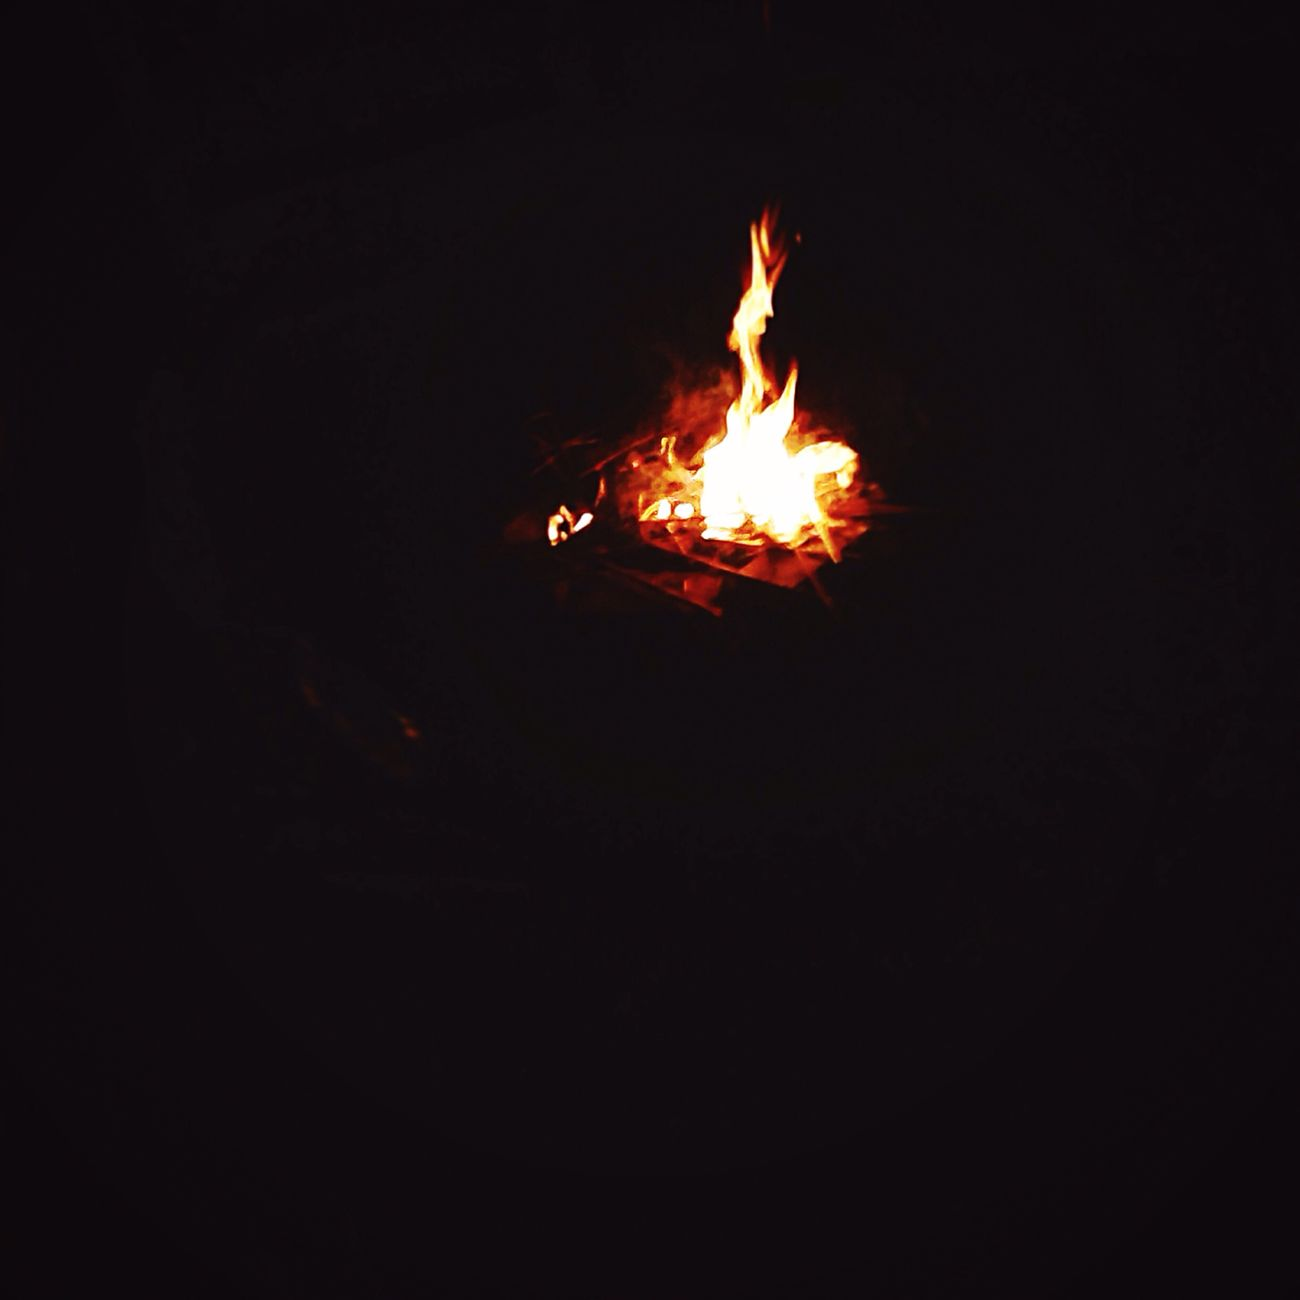 Fire Iphonephotography Hangingoutwithfriends Nightphotography Weekends